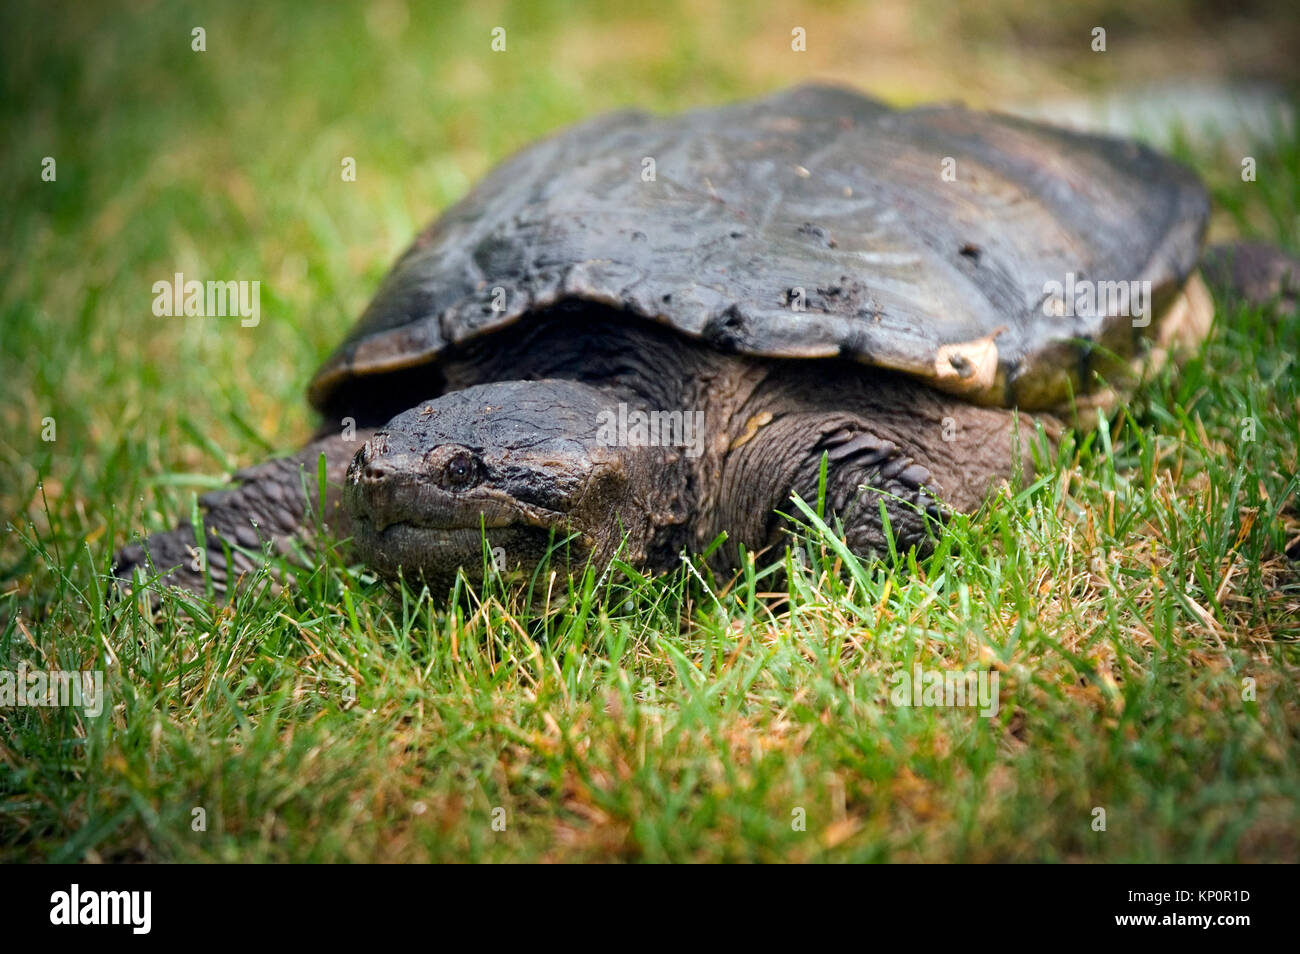 A snapping Turtle (Chelydra serpentine) on Cape Cod, Massachusetts, USA Stock Photo